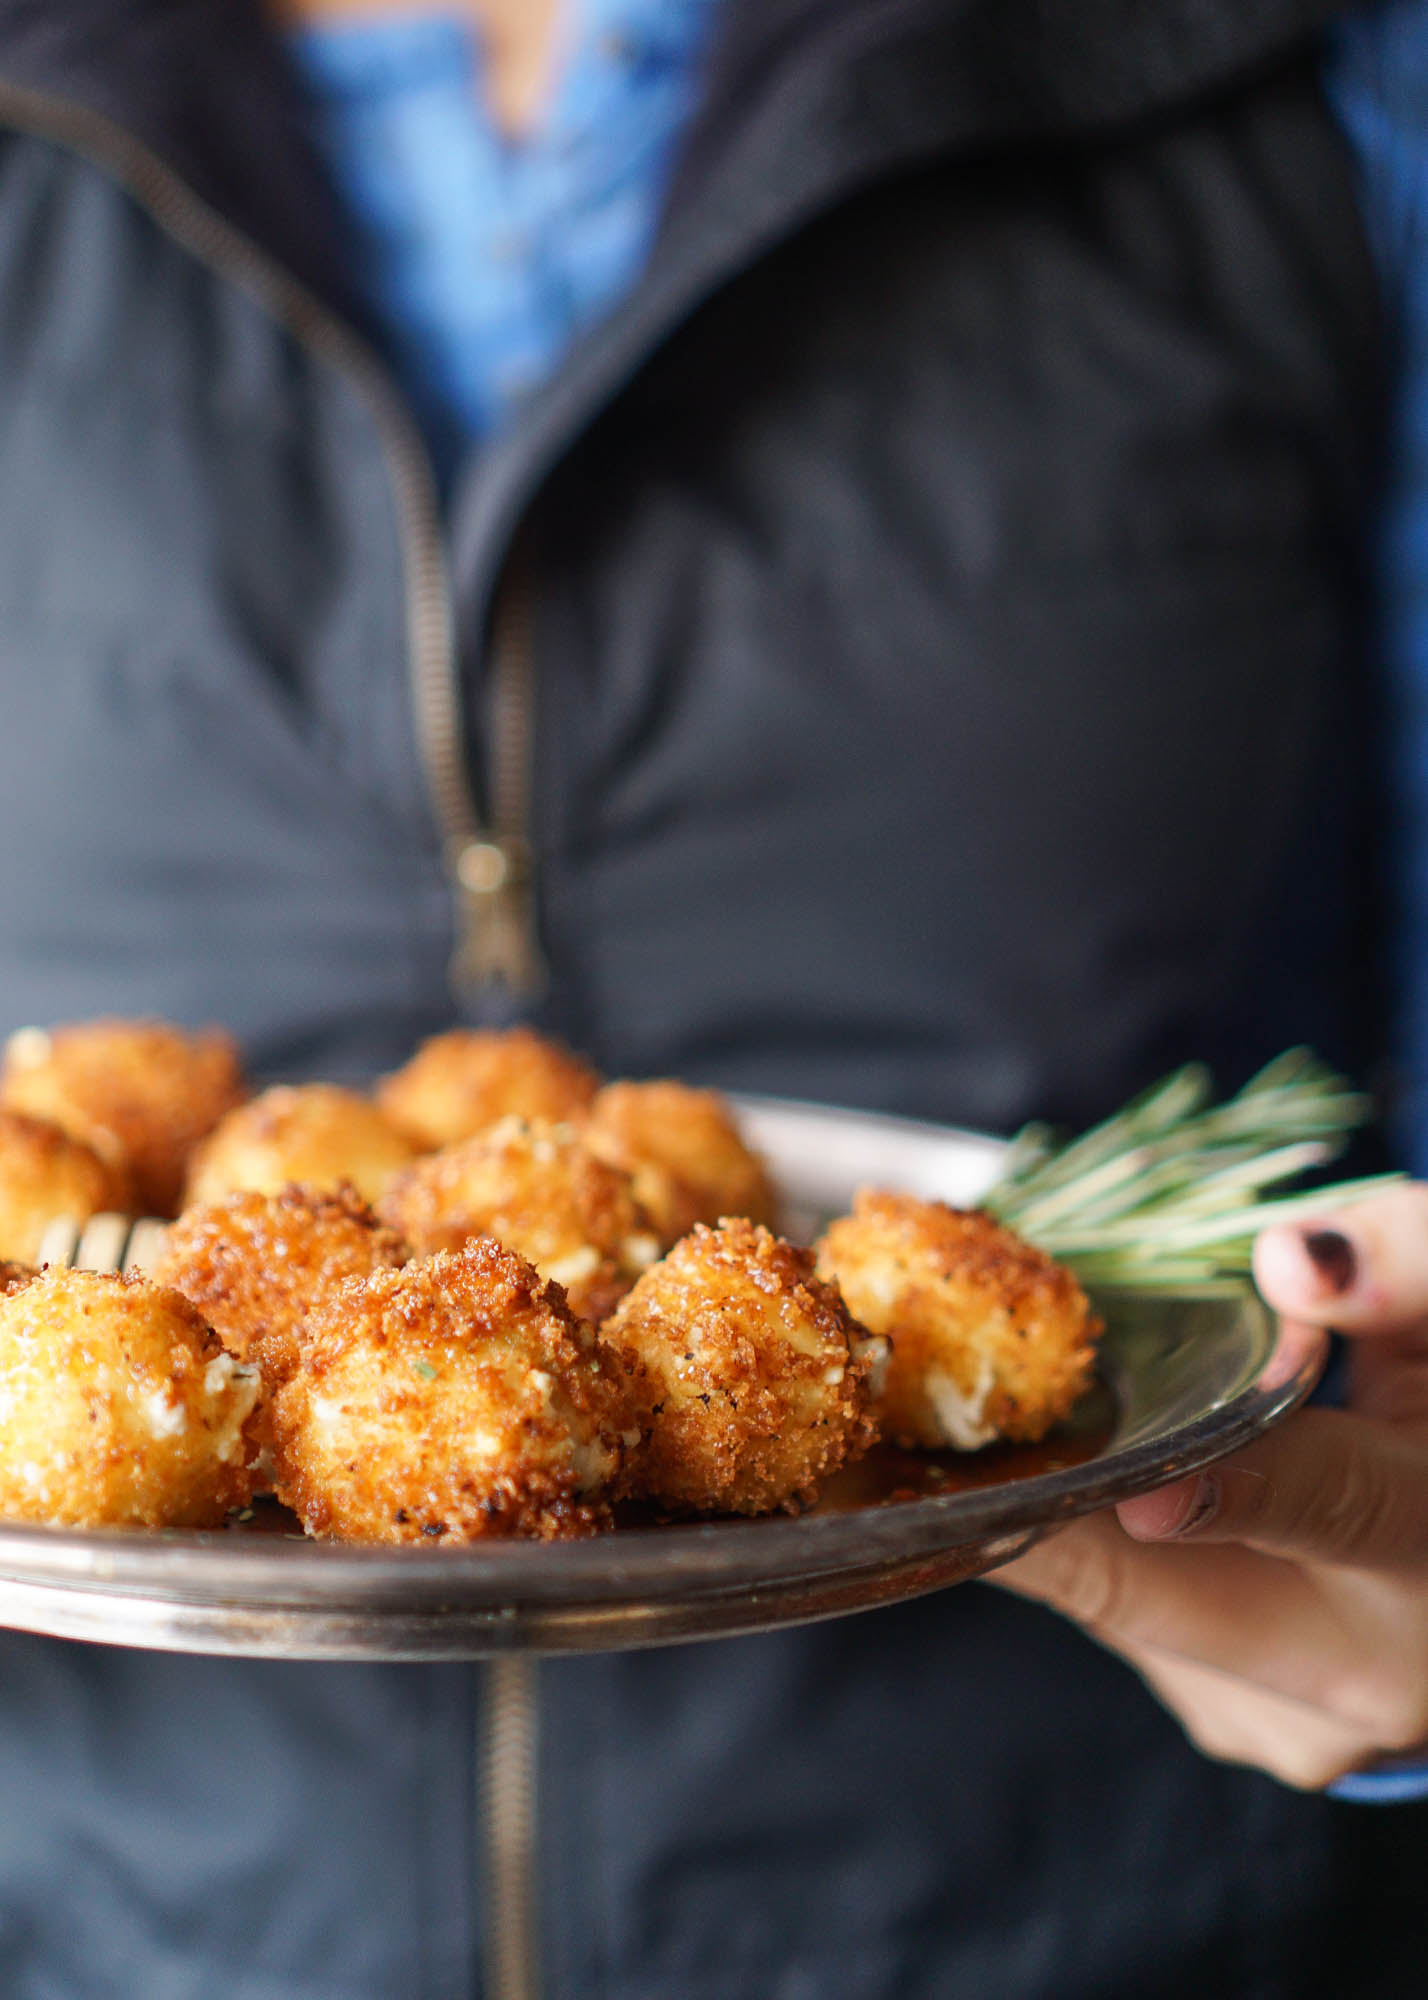 Fried goat cheese balls with tarragon and honey